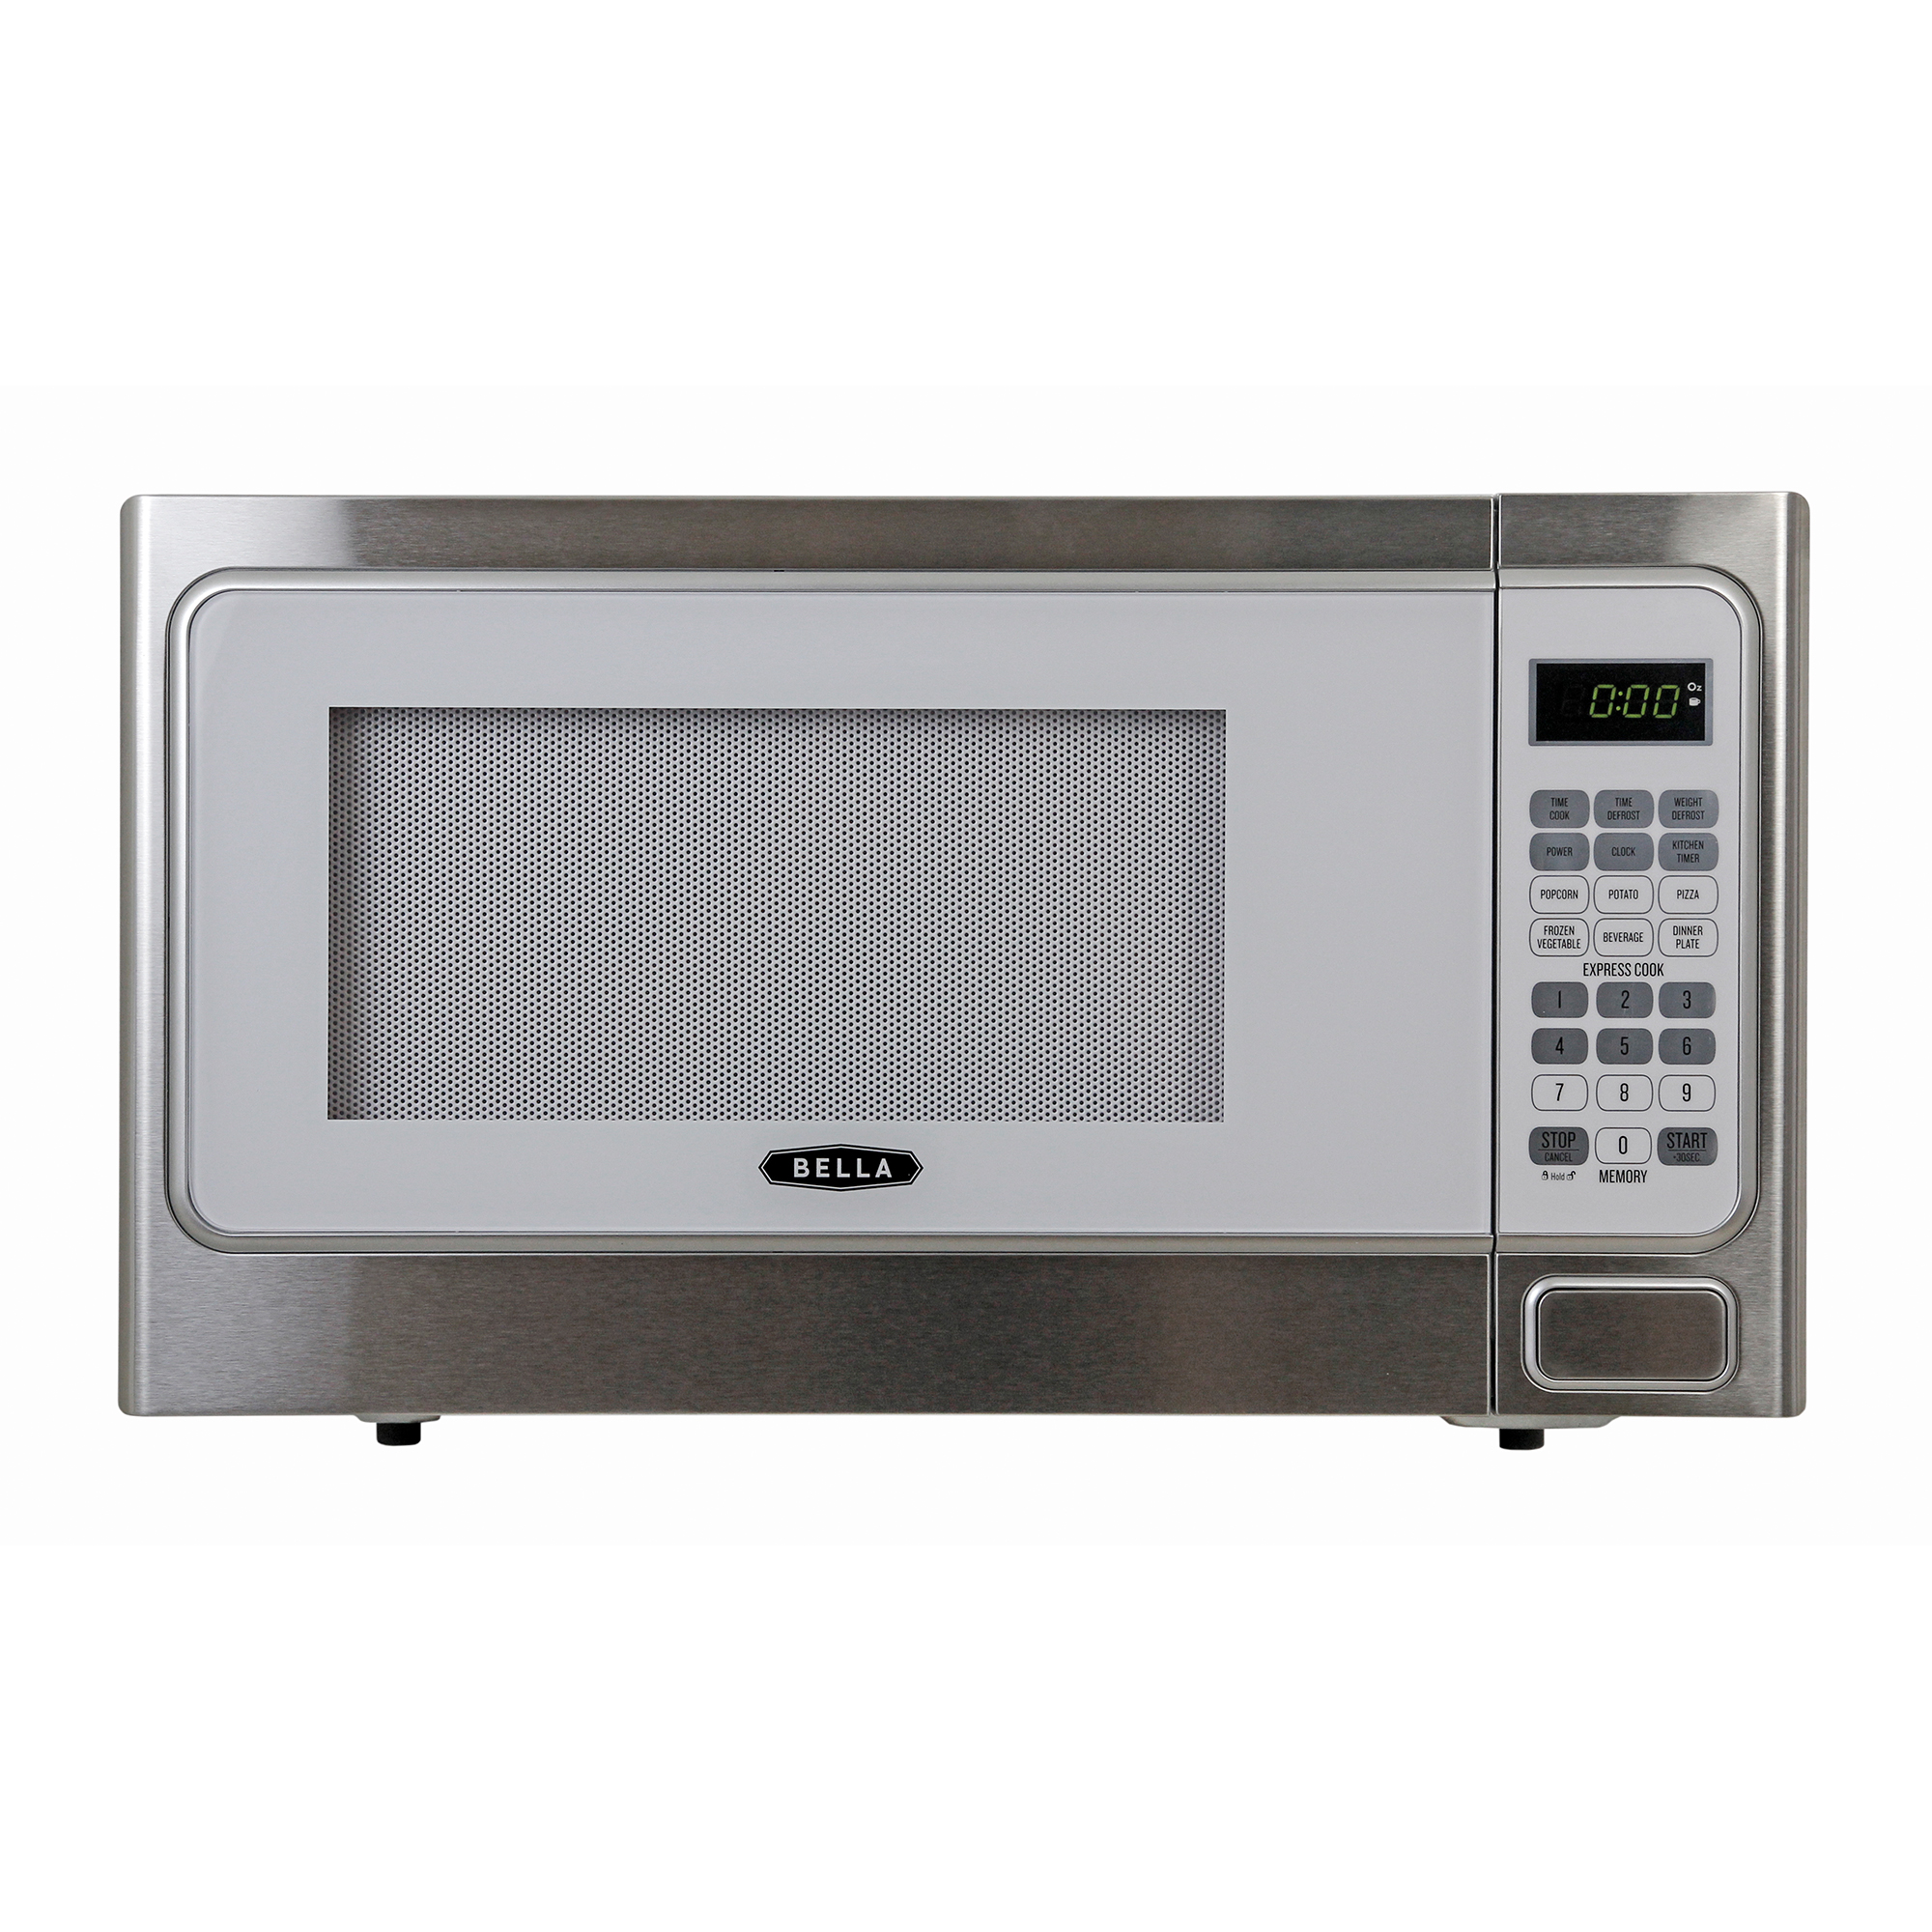 Bella 1.1 Cubic Foot 1000 Watt Microwave Oven in White with Stainless Steel